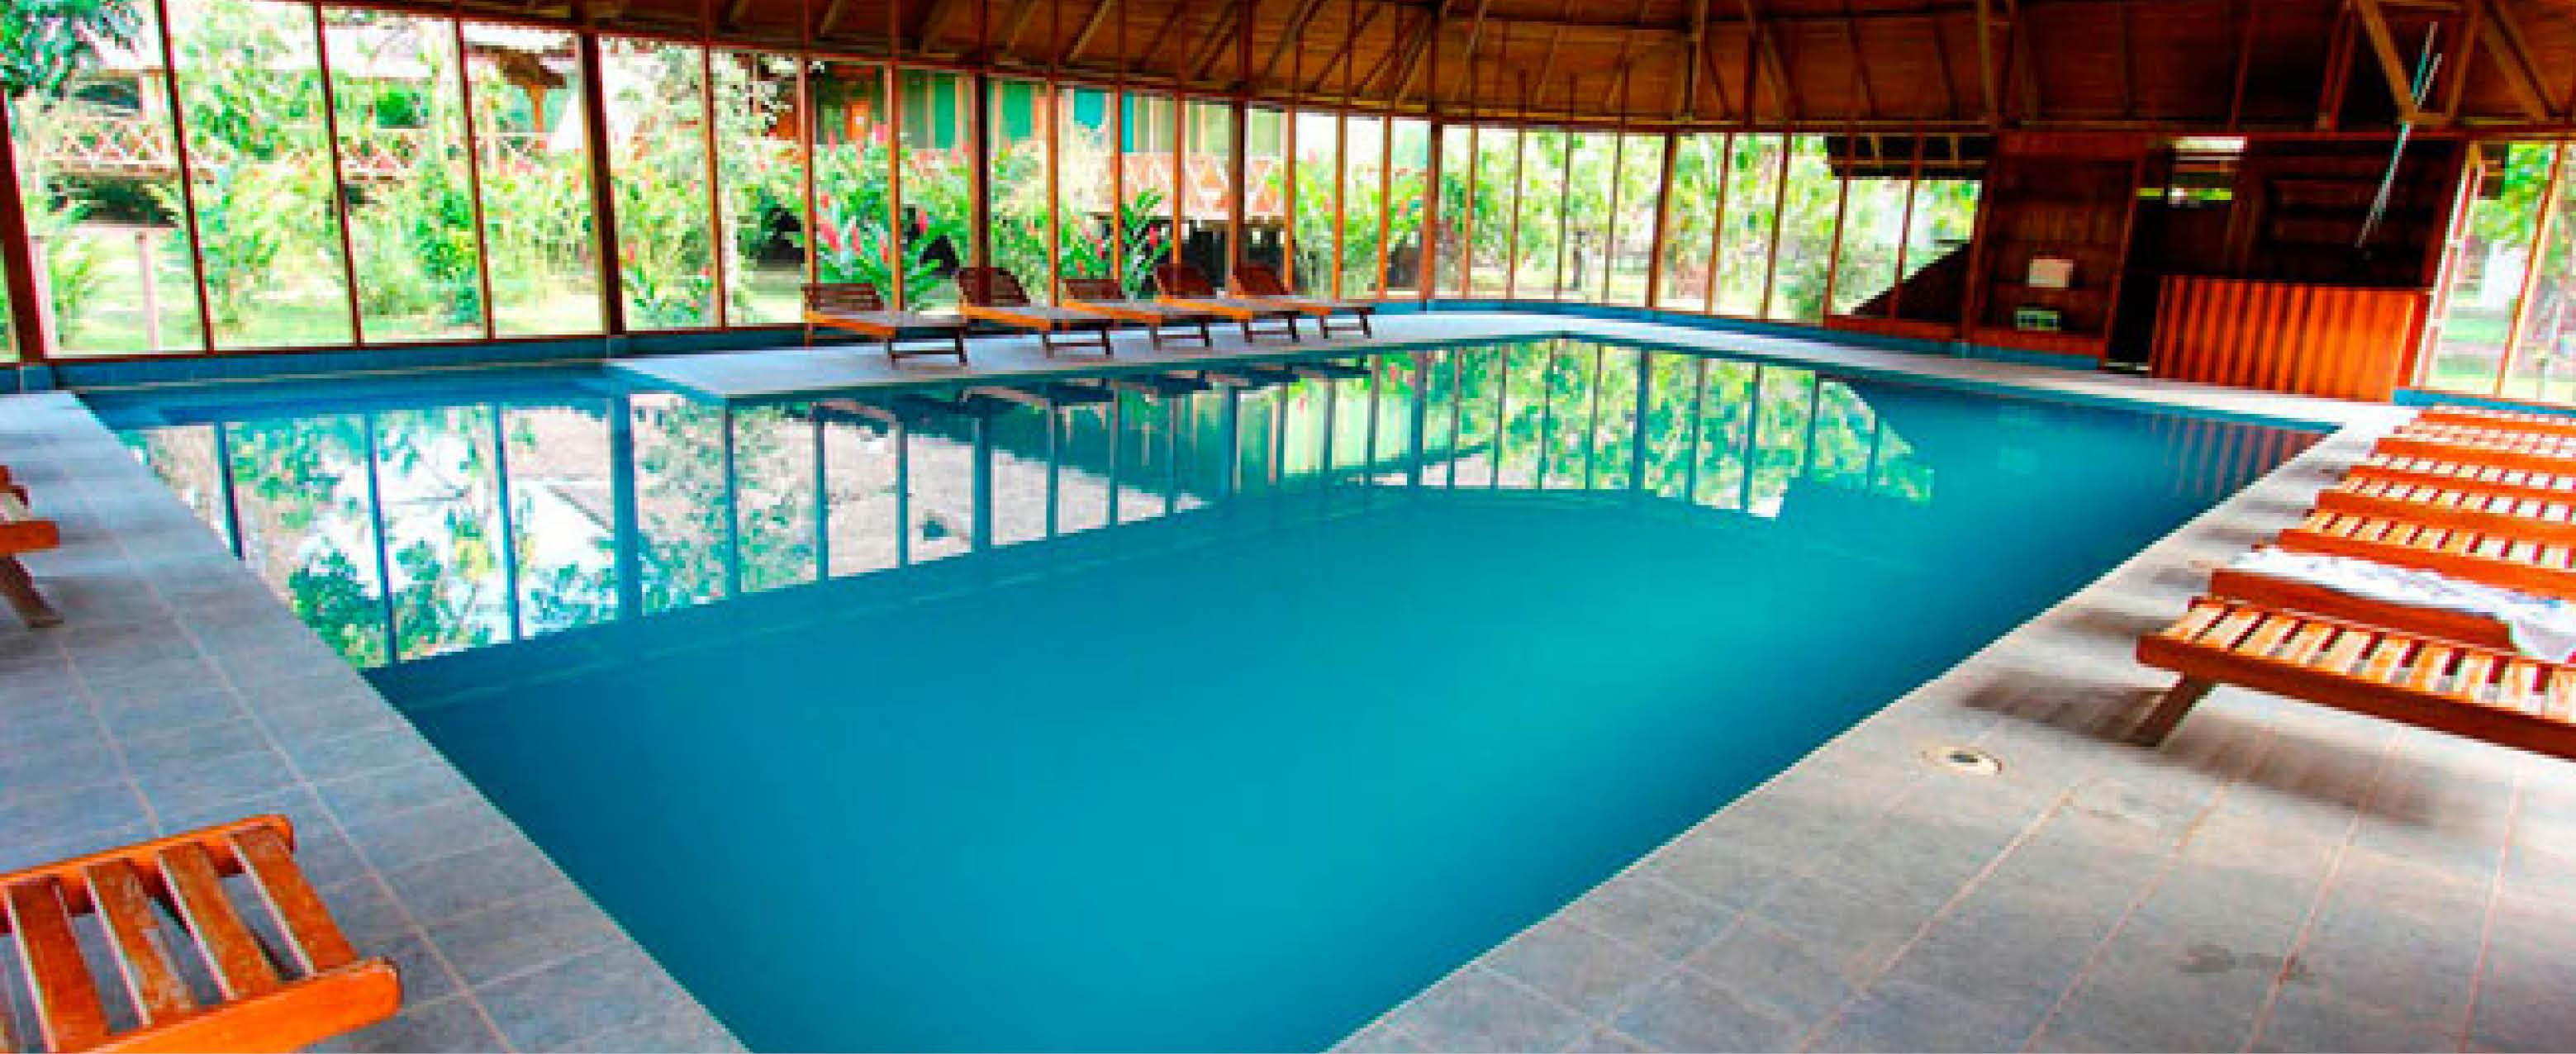 pool p� Eco Amazonia Lodgei perus jungle